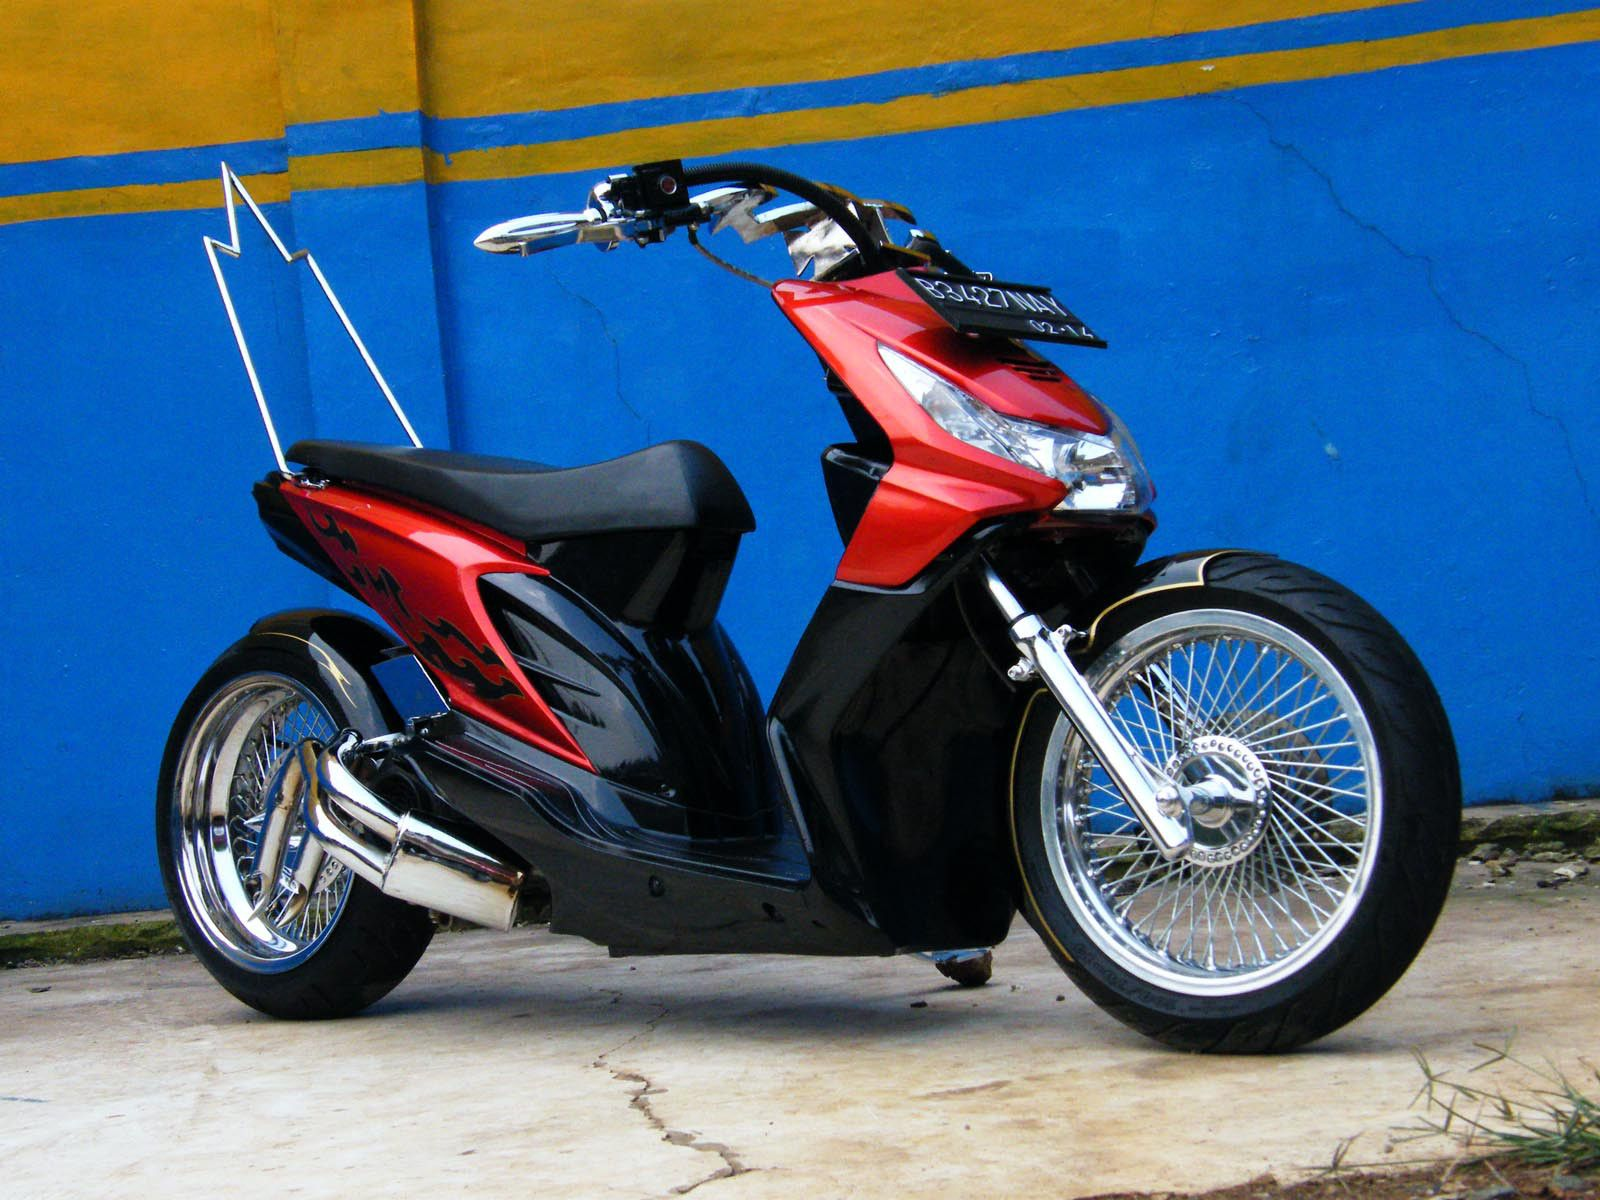 Modifikasi bergaya retro, photo: modifikasi Honda BeAT